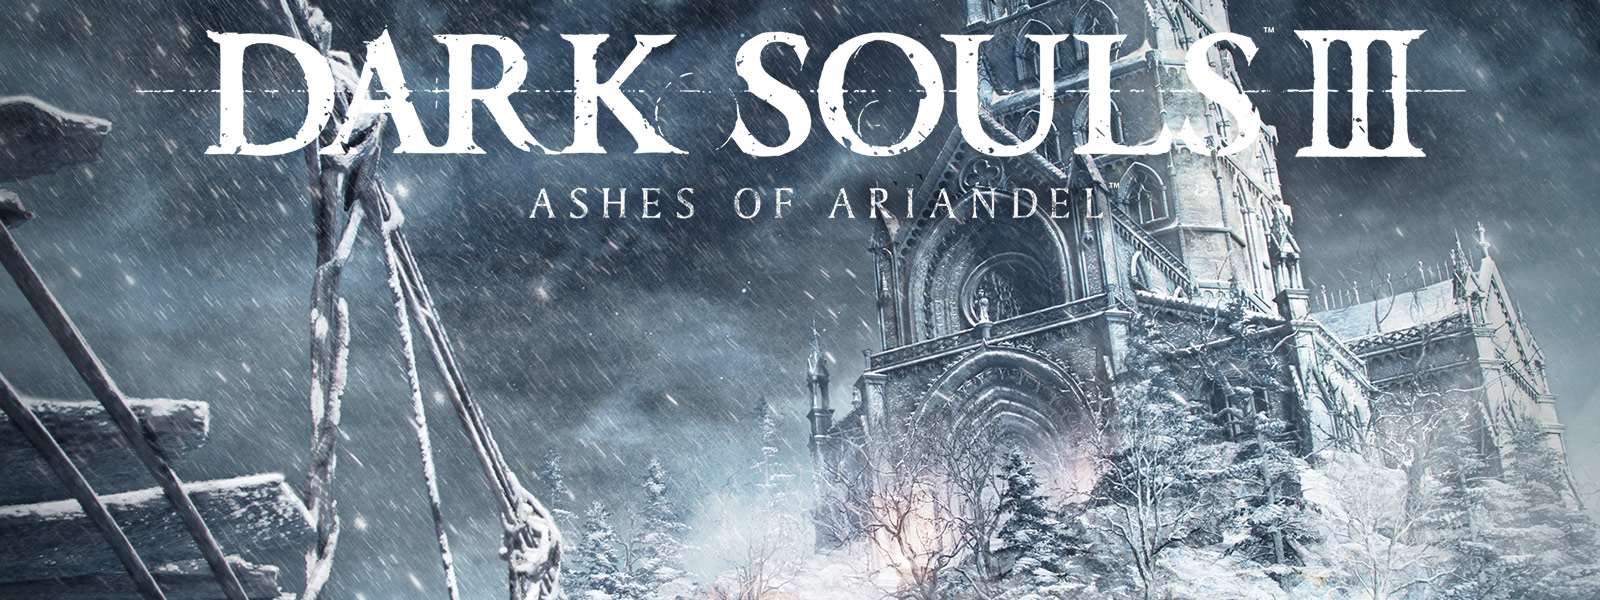 Dark Souls 3: The Ashes of Ariendel DLC